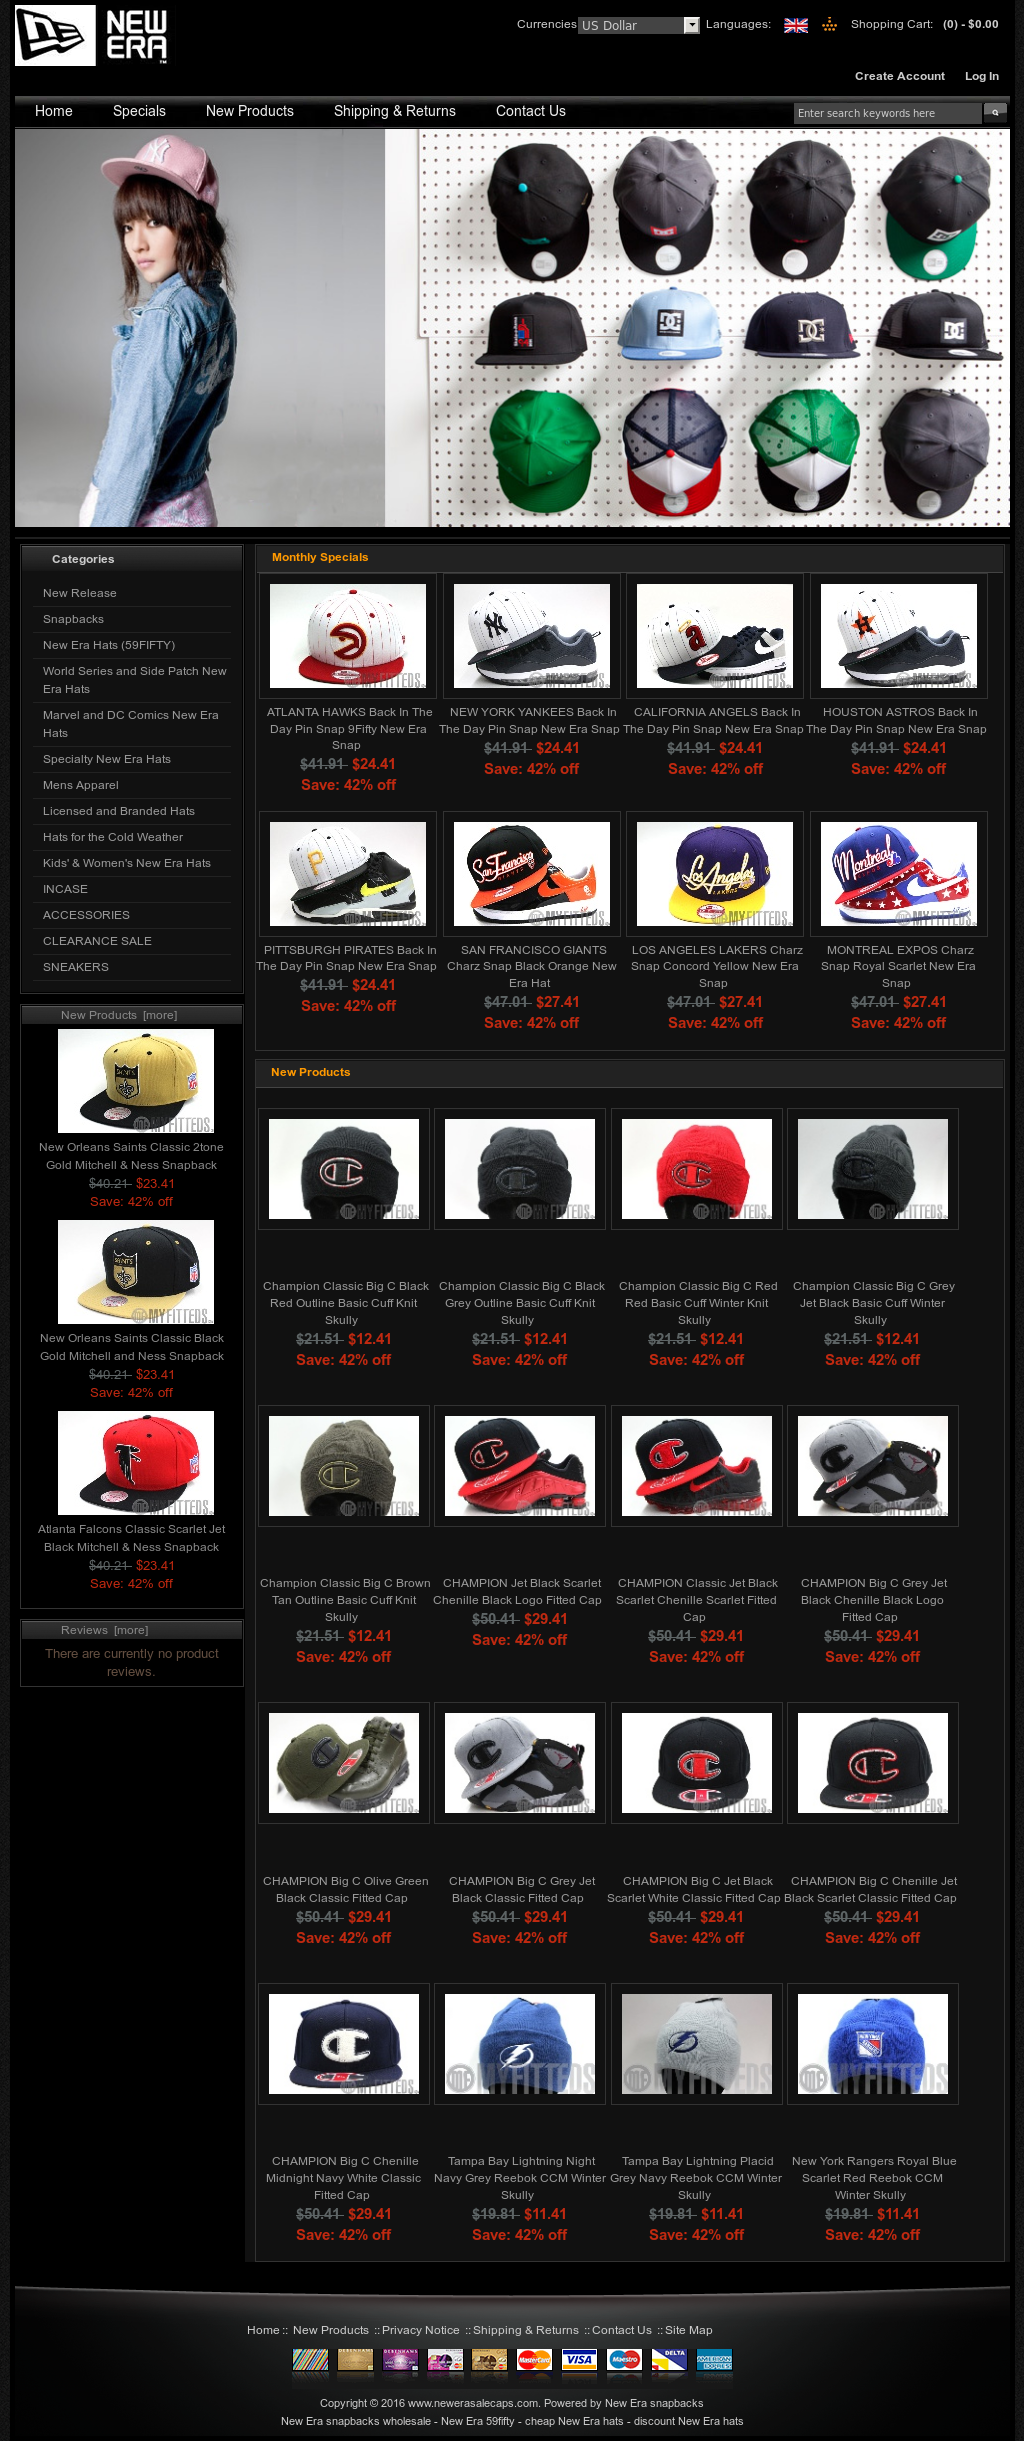 e7799be3 New Era Snapbacks Competitors, Revenue and Employees - Owler Company Profile